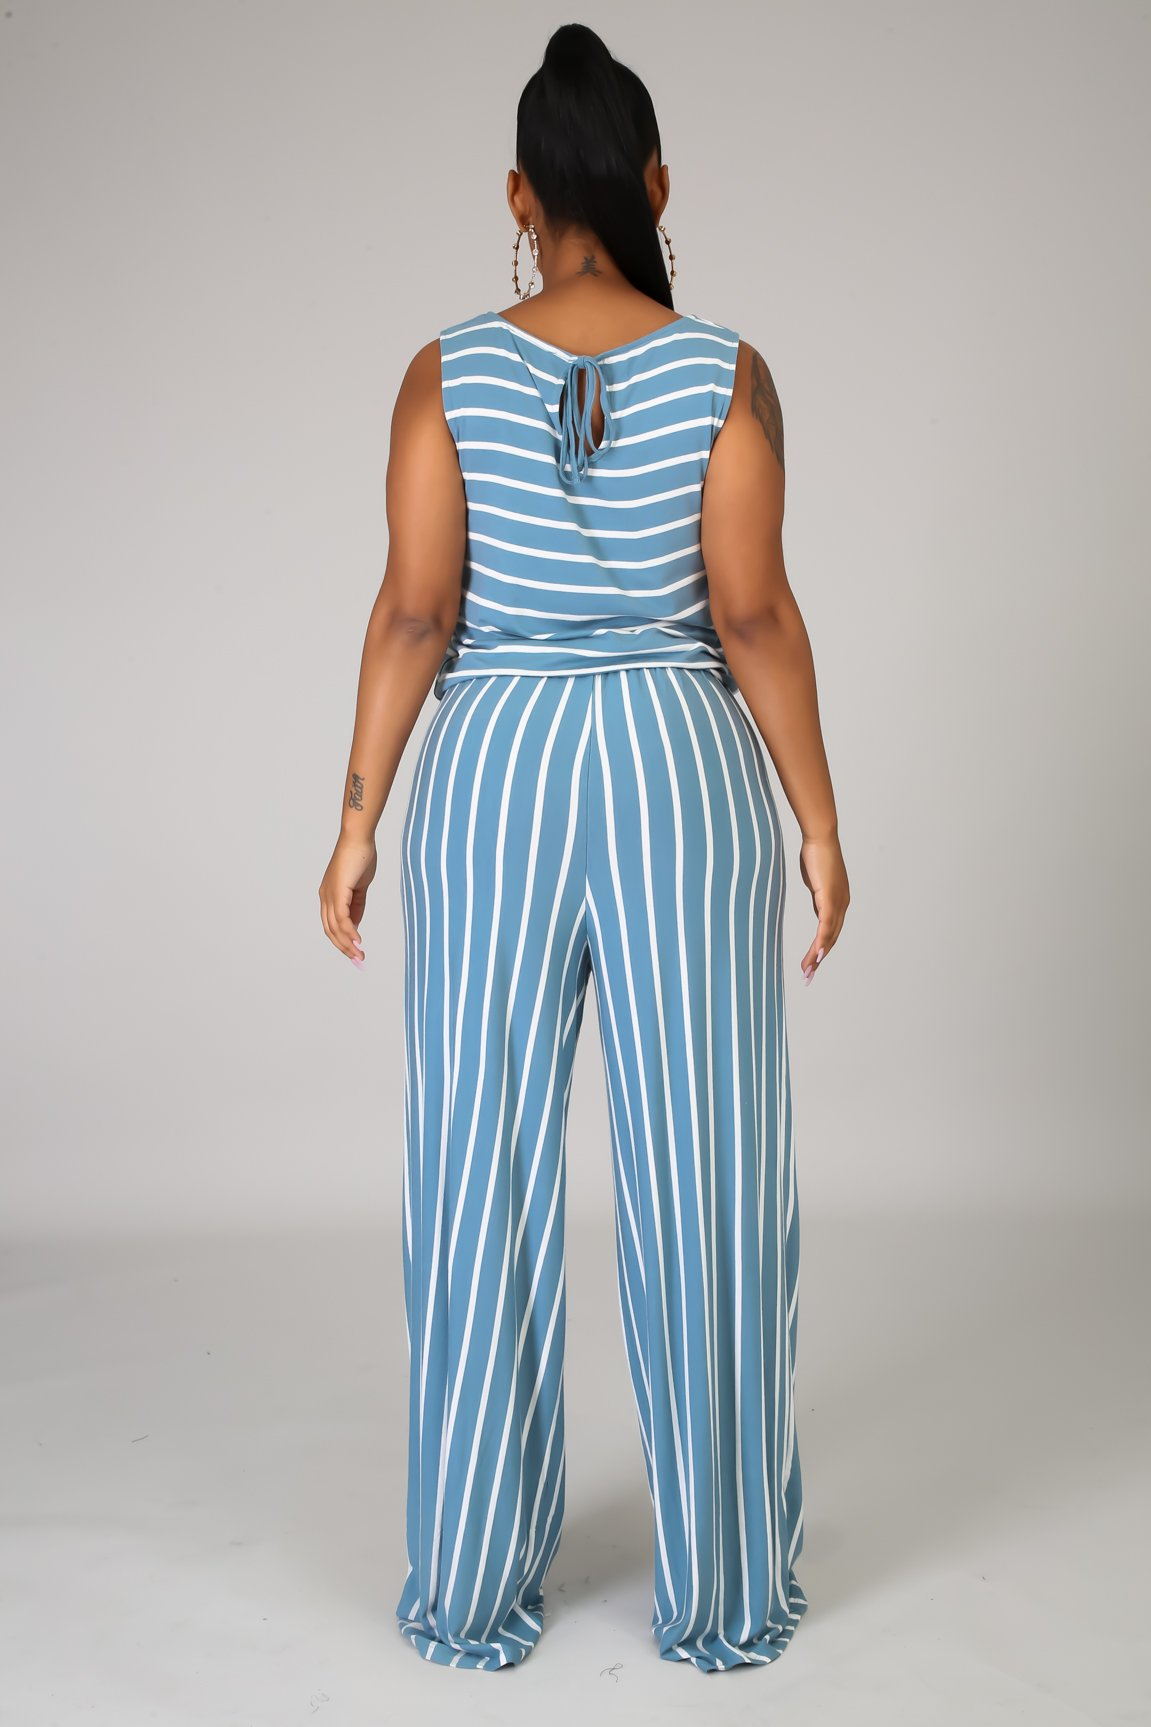 Go Crazy Stripe Jumpsuit - Blue